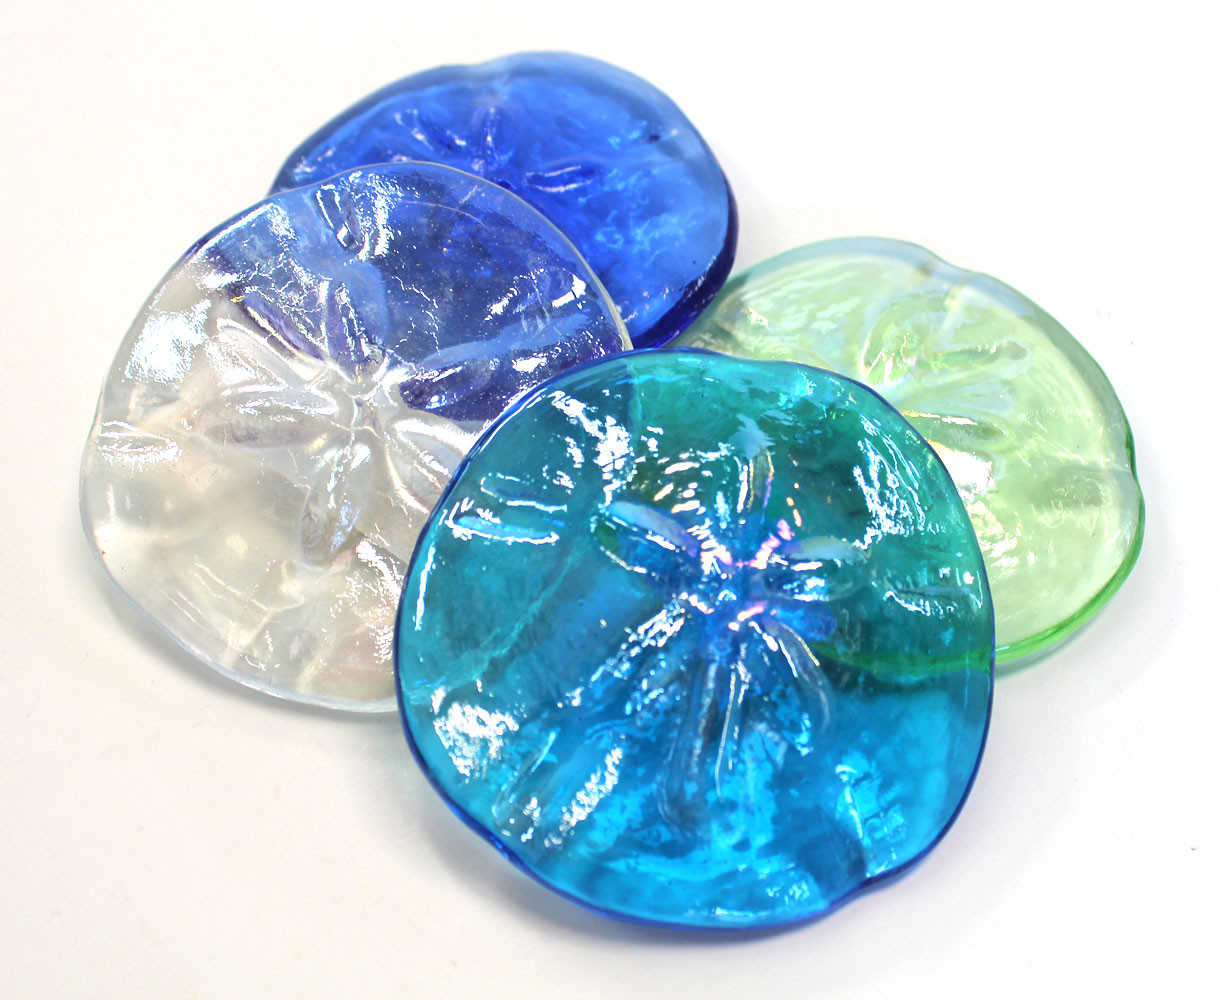 How To Measure Diameter >> Sand Dollar Colored Glass Paper Weights - Coastal Tabletop